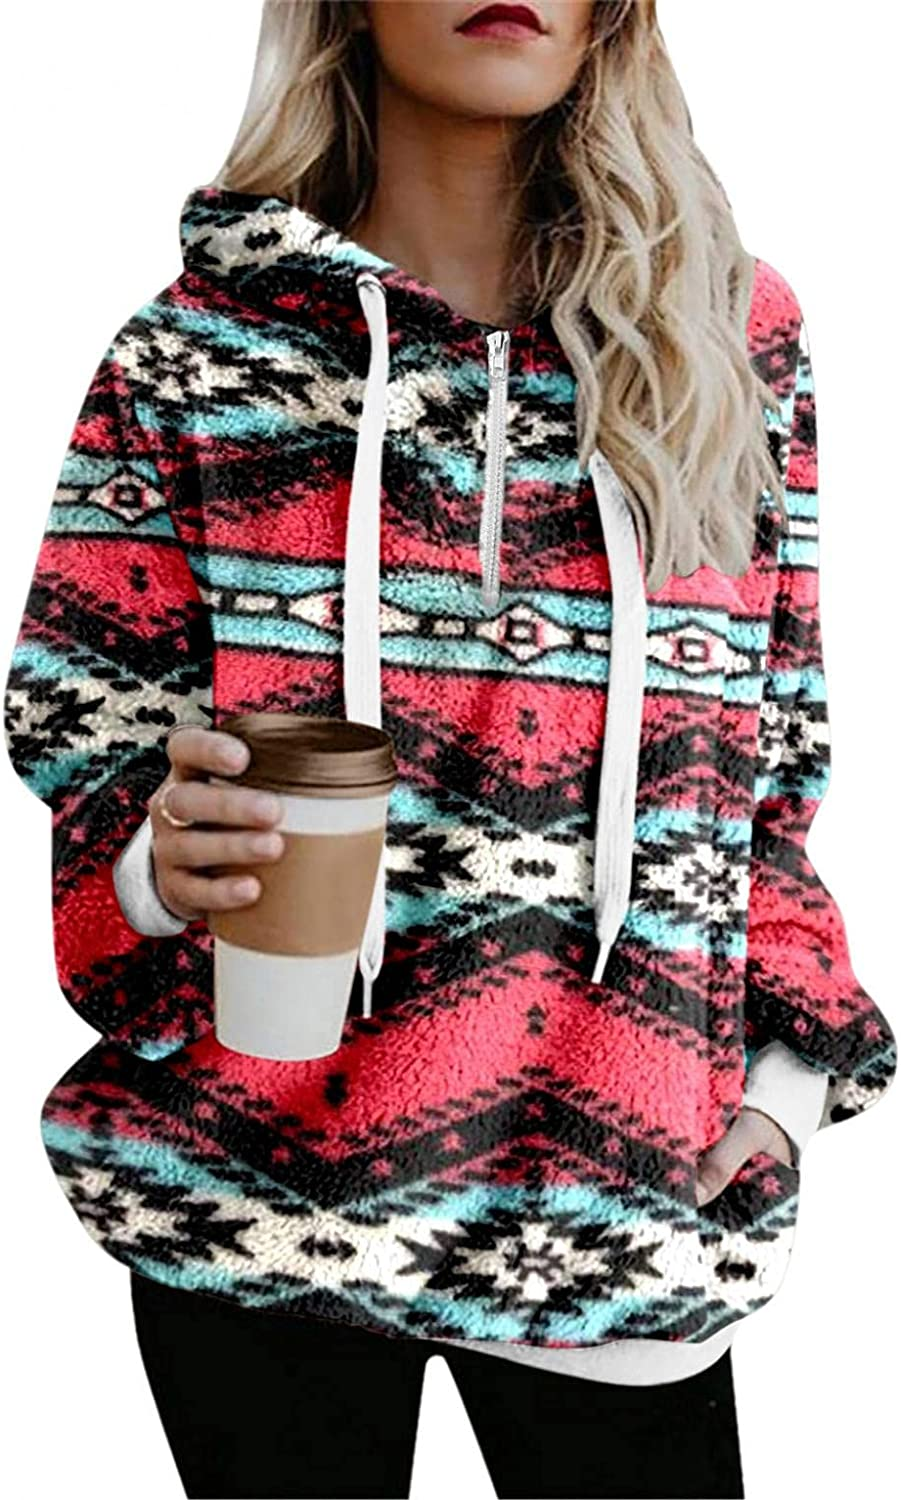 HCNTES Hoodies for Women Long Sleeve Zip Up Sweatshirt Fleece Fashion Printed Pullover Outwear Coat with Pockets